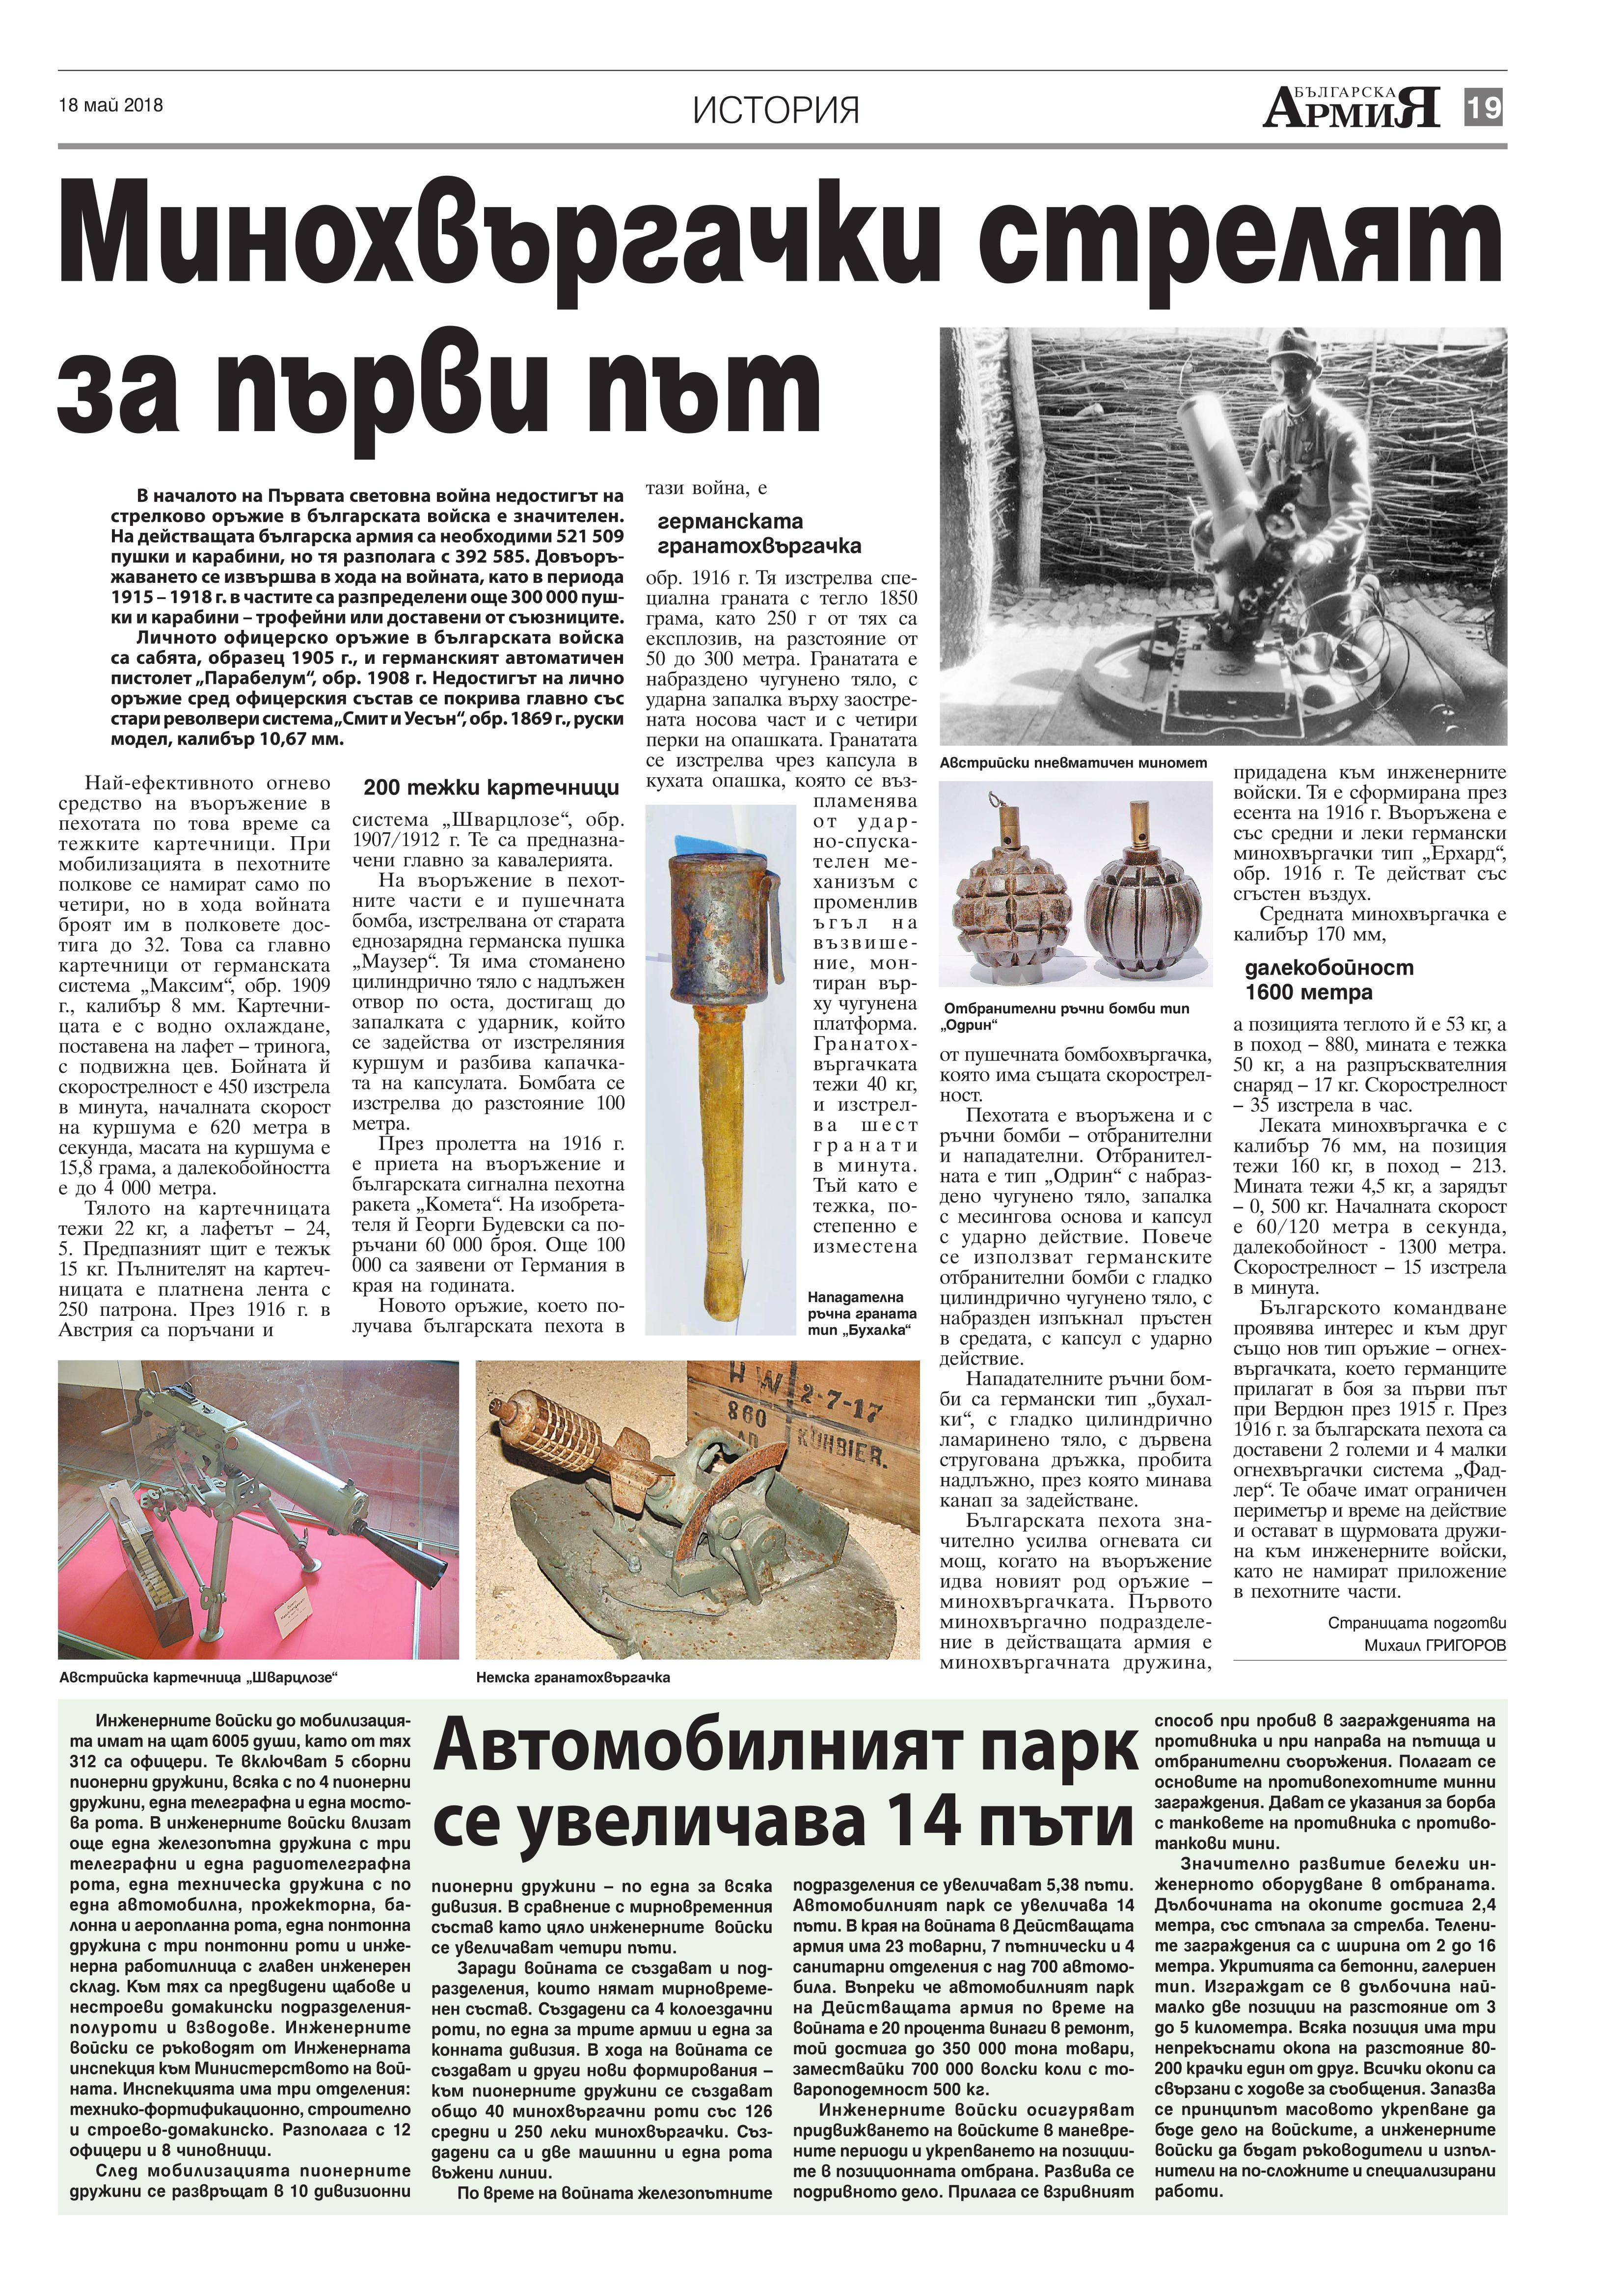 https://armymedia.bg/wp-content/uploads/2015/06/19.page1_-51.jpg